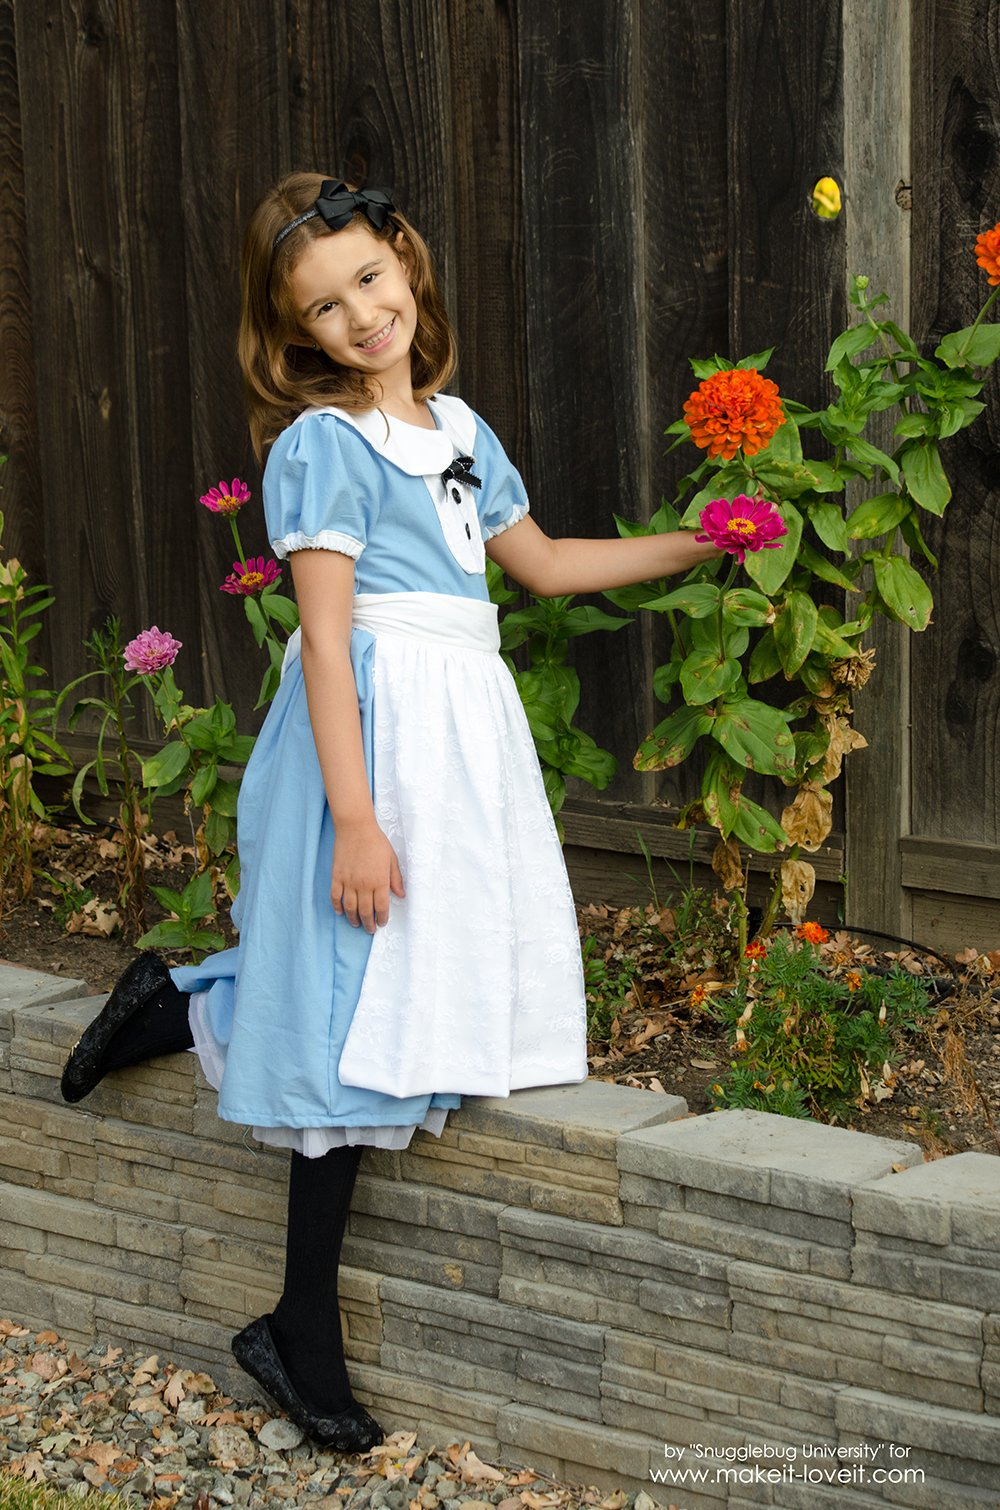 Alice In Wonderland Costumes - For The Whole Family! | via makeit-loveit.com